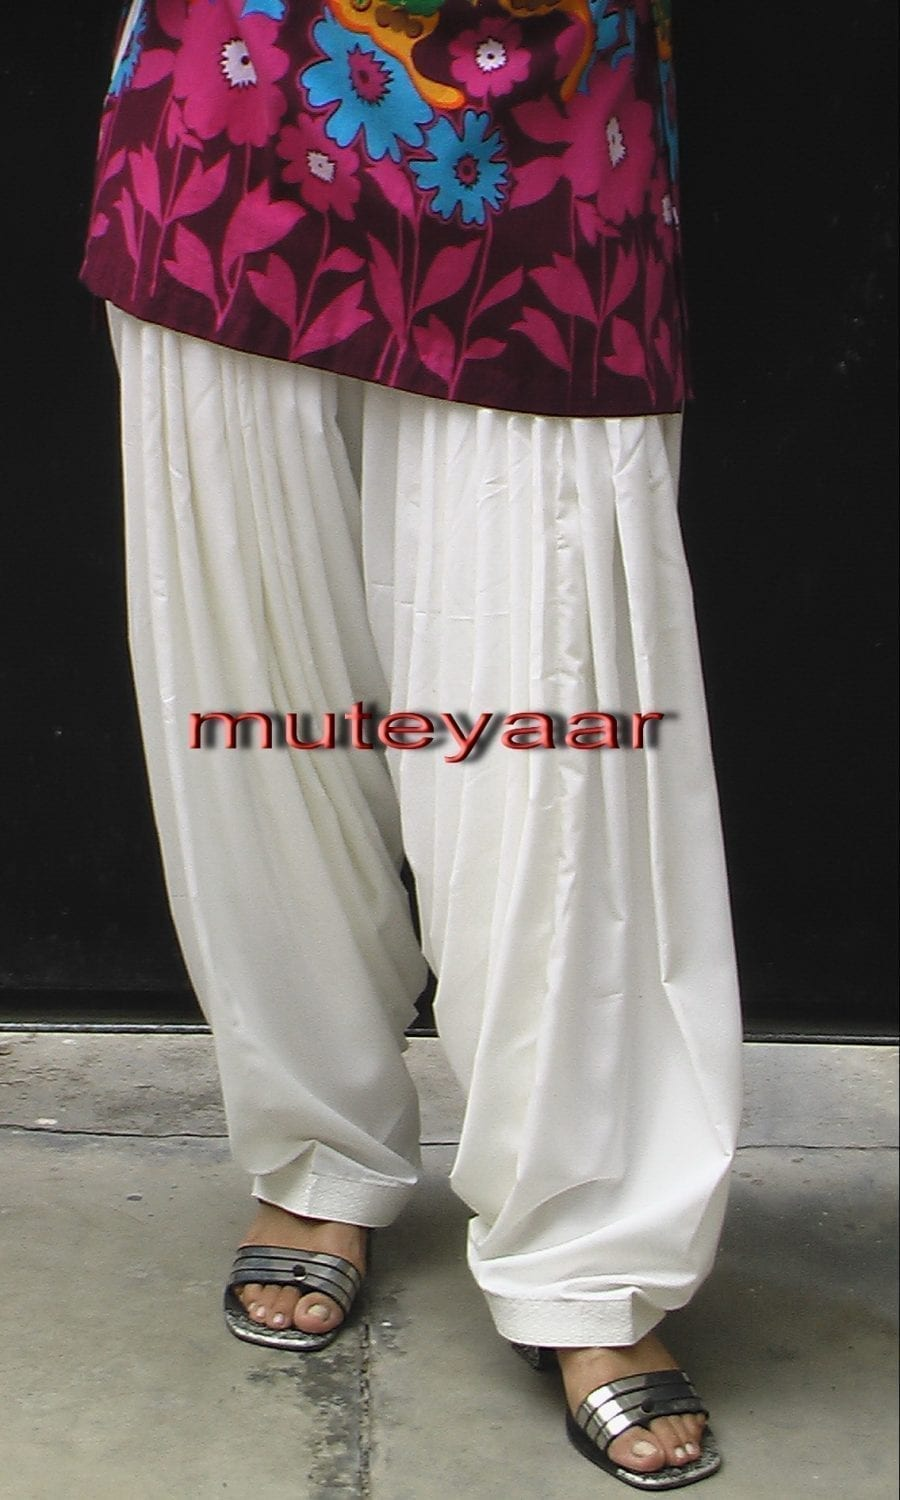 Patiala Salwar Ready to Wear - Buy Online from Patiala City !! 4